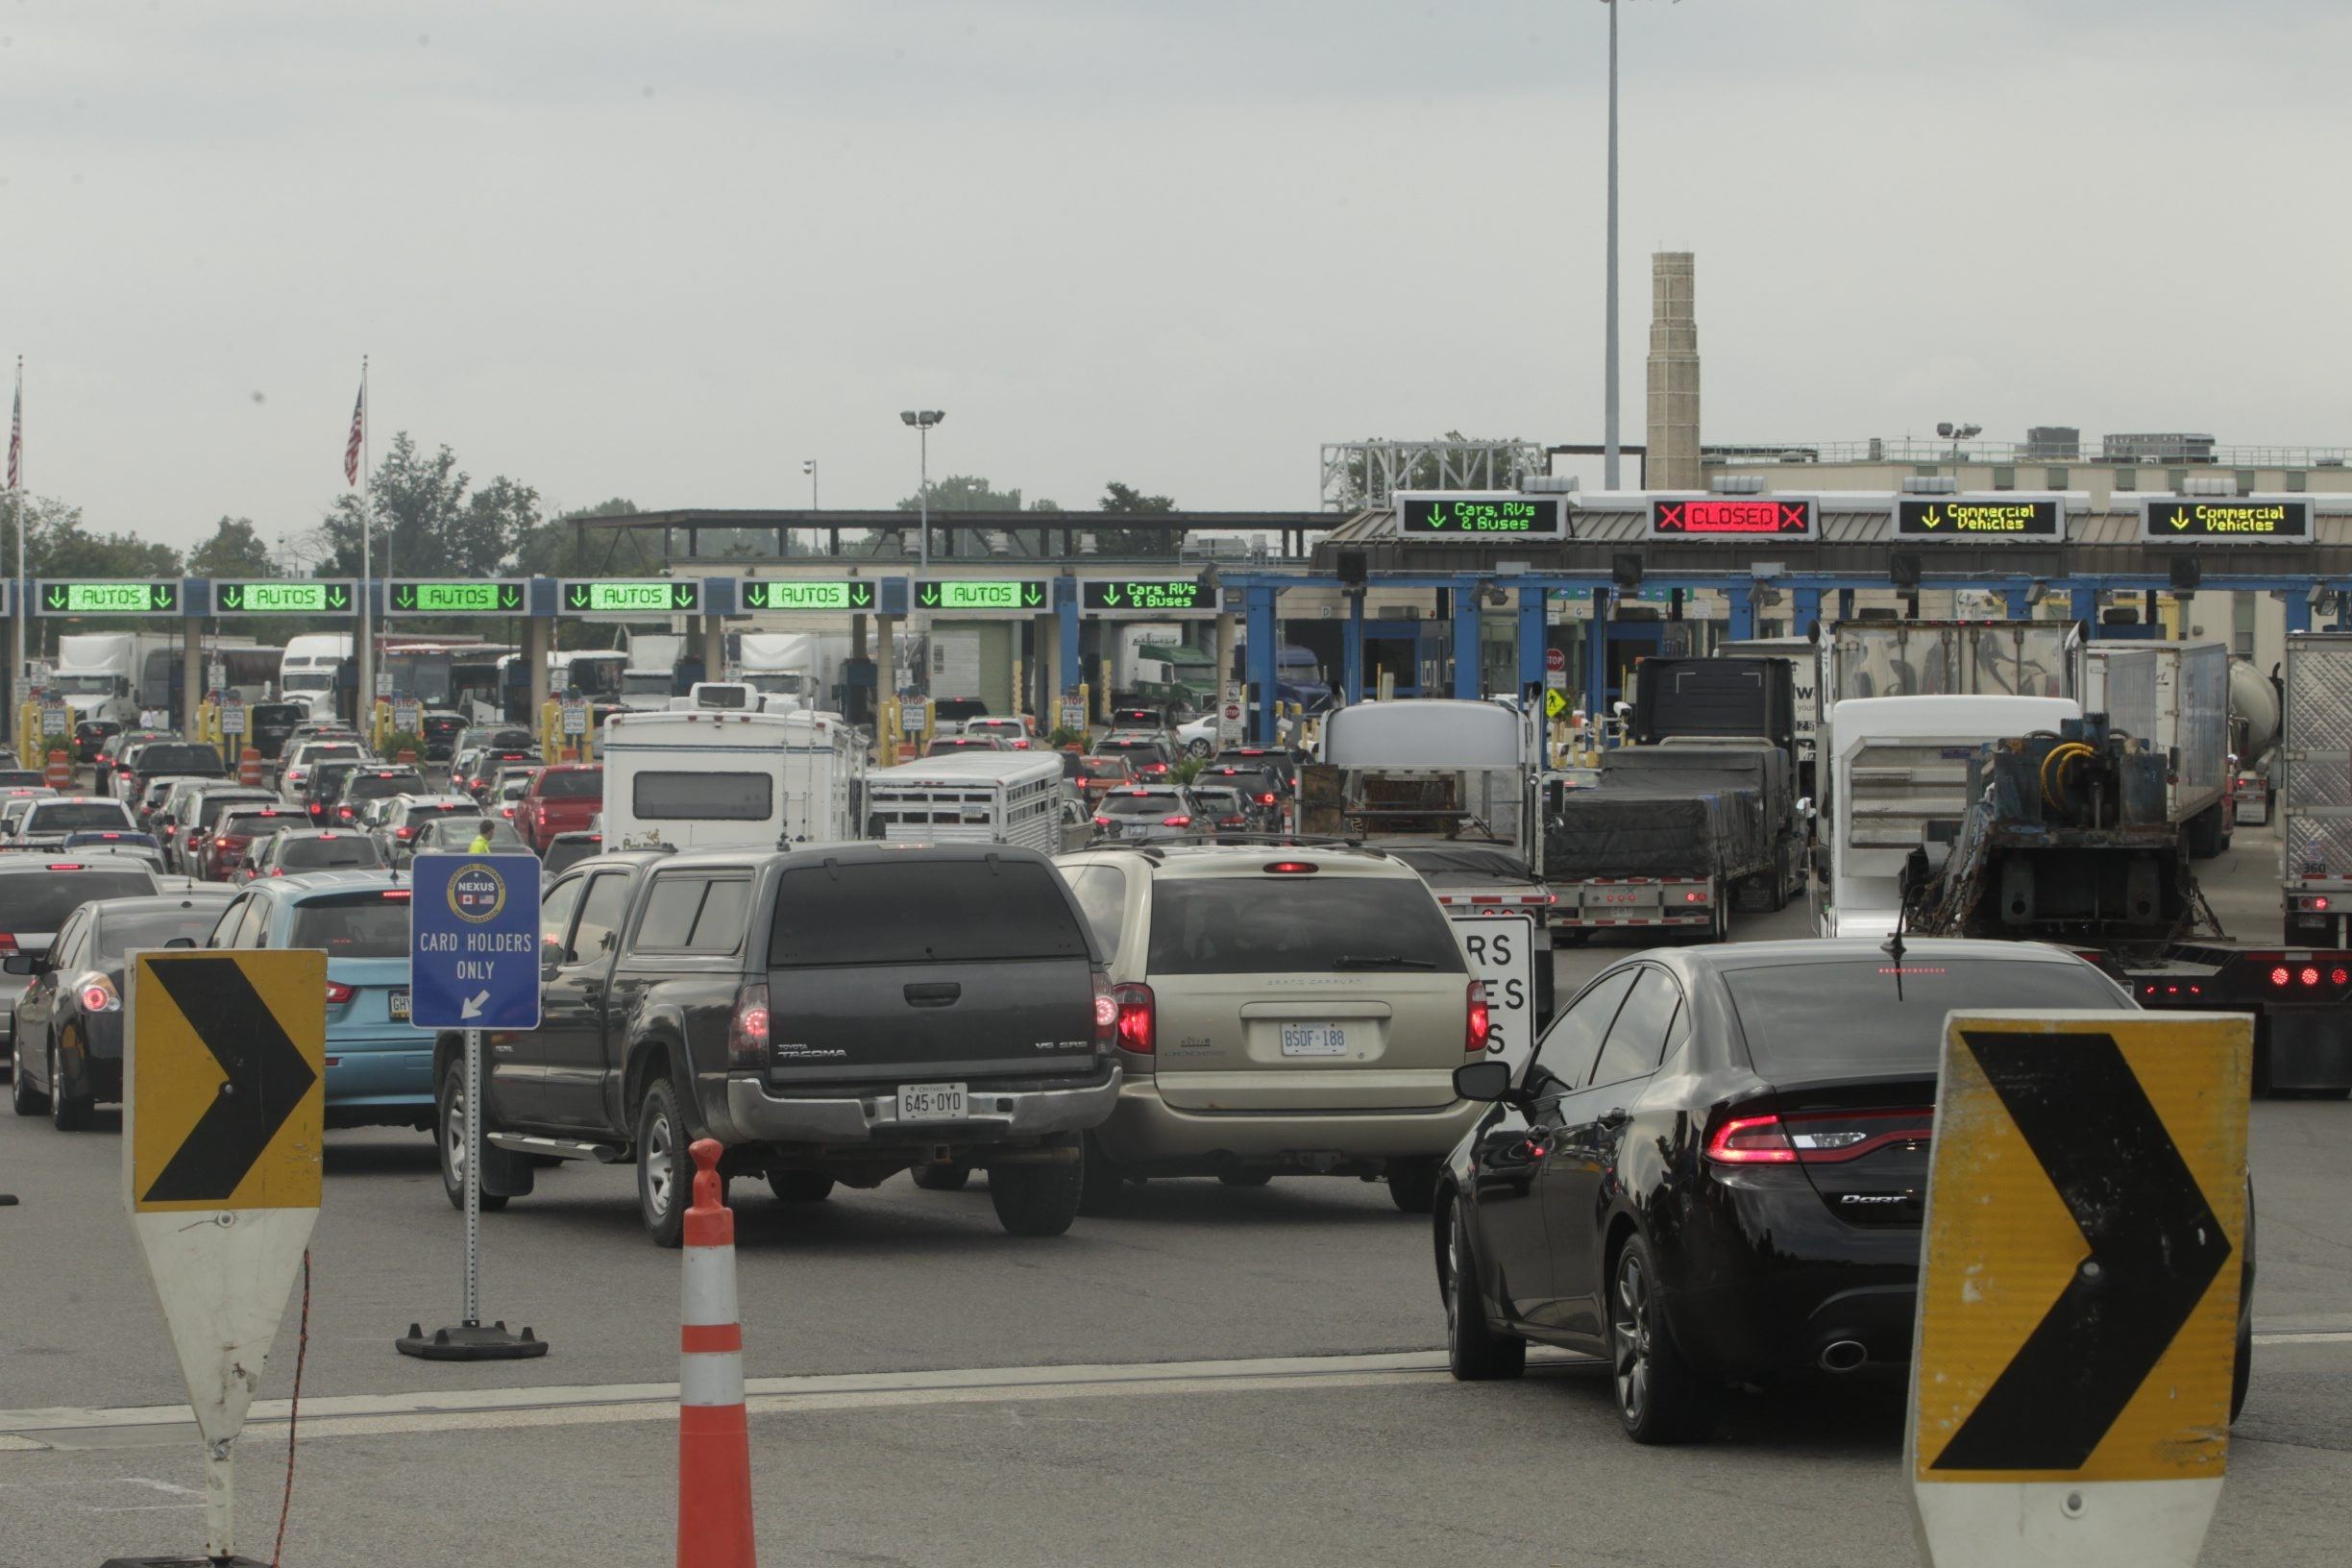 Lines of traffic wait to enter the United States from Canada at the Peace Bridge in Buffalo last summer. A House GOP plan to require biometric testing of everyone leaving the country would create epic traffic jams, some say. (John Hickey/Buffalo News)